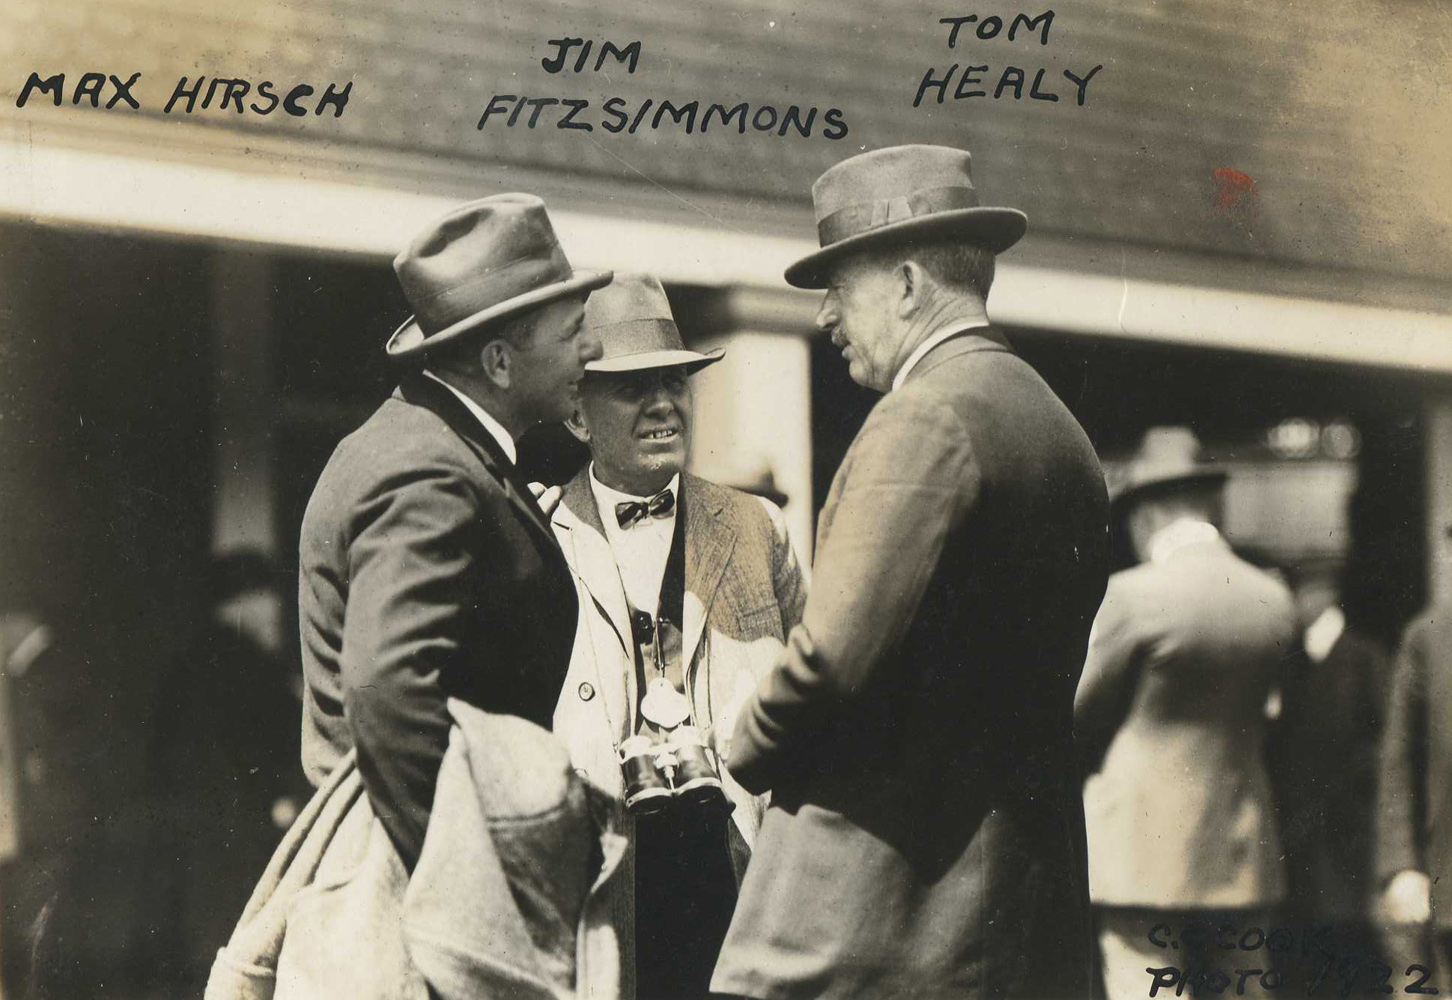 """A young James """"Sunny Jim"""" Fiitzsimmons (center) with fellow future Hall of Fame trainers Max Hirsch and T. J. Healey in 1922 (C. C. Cook/Museum Collection)"""